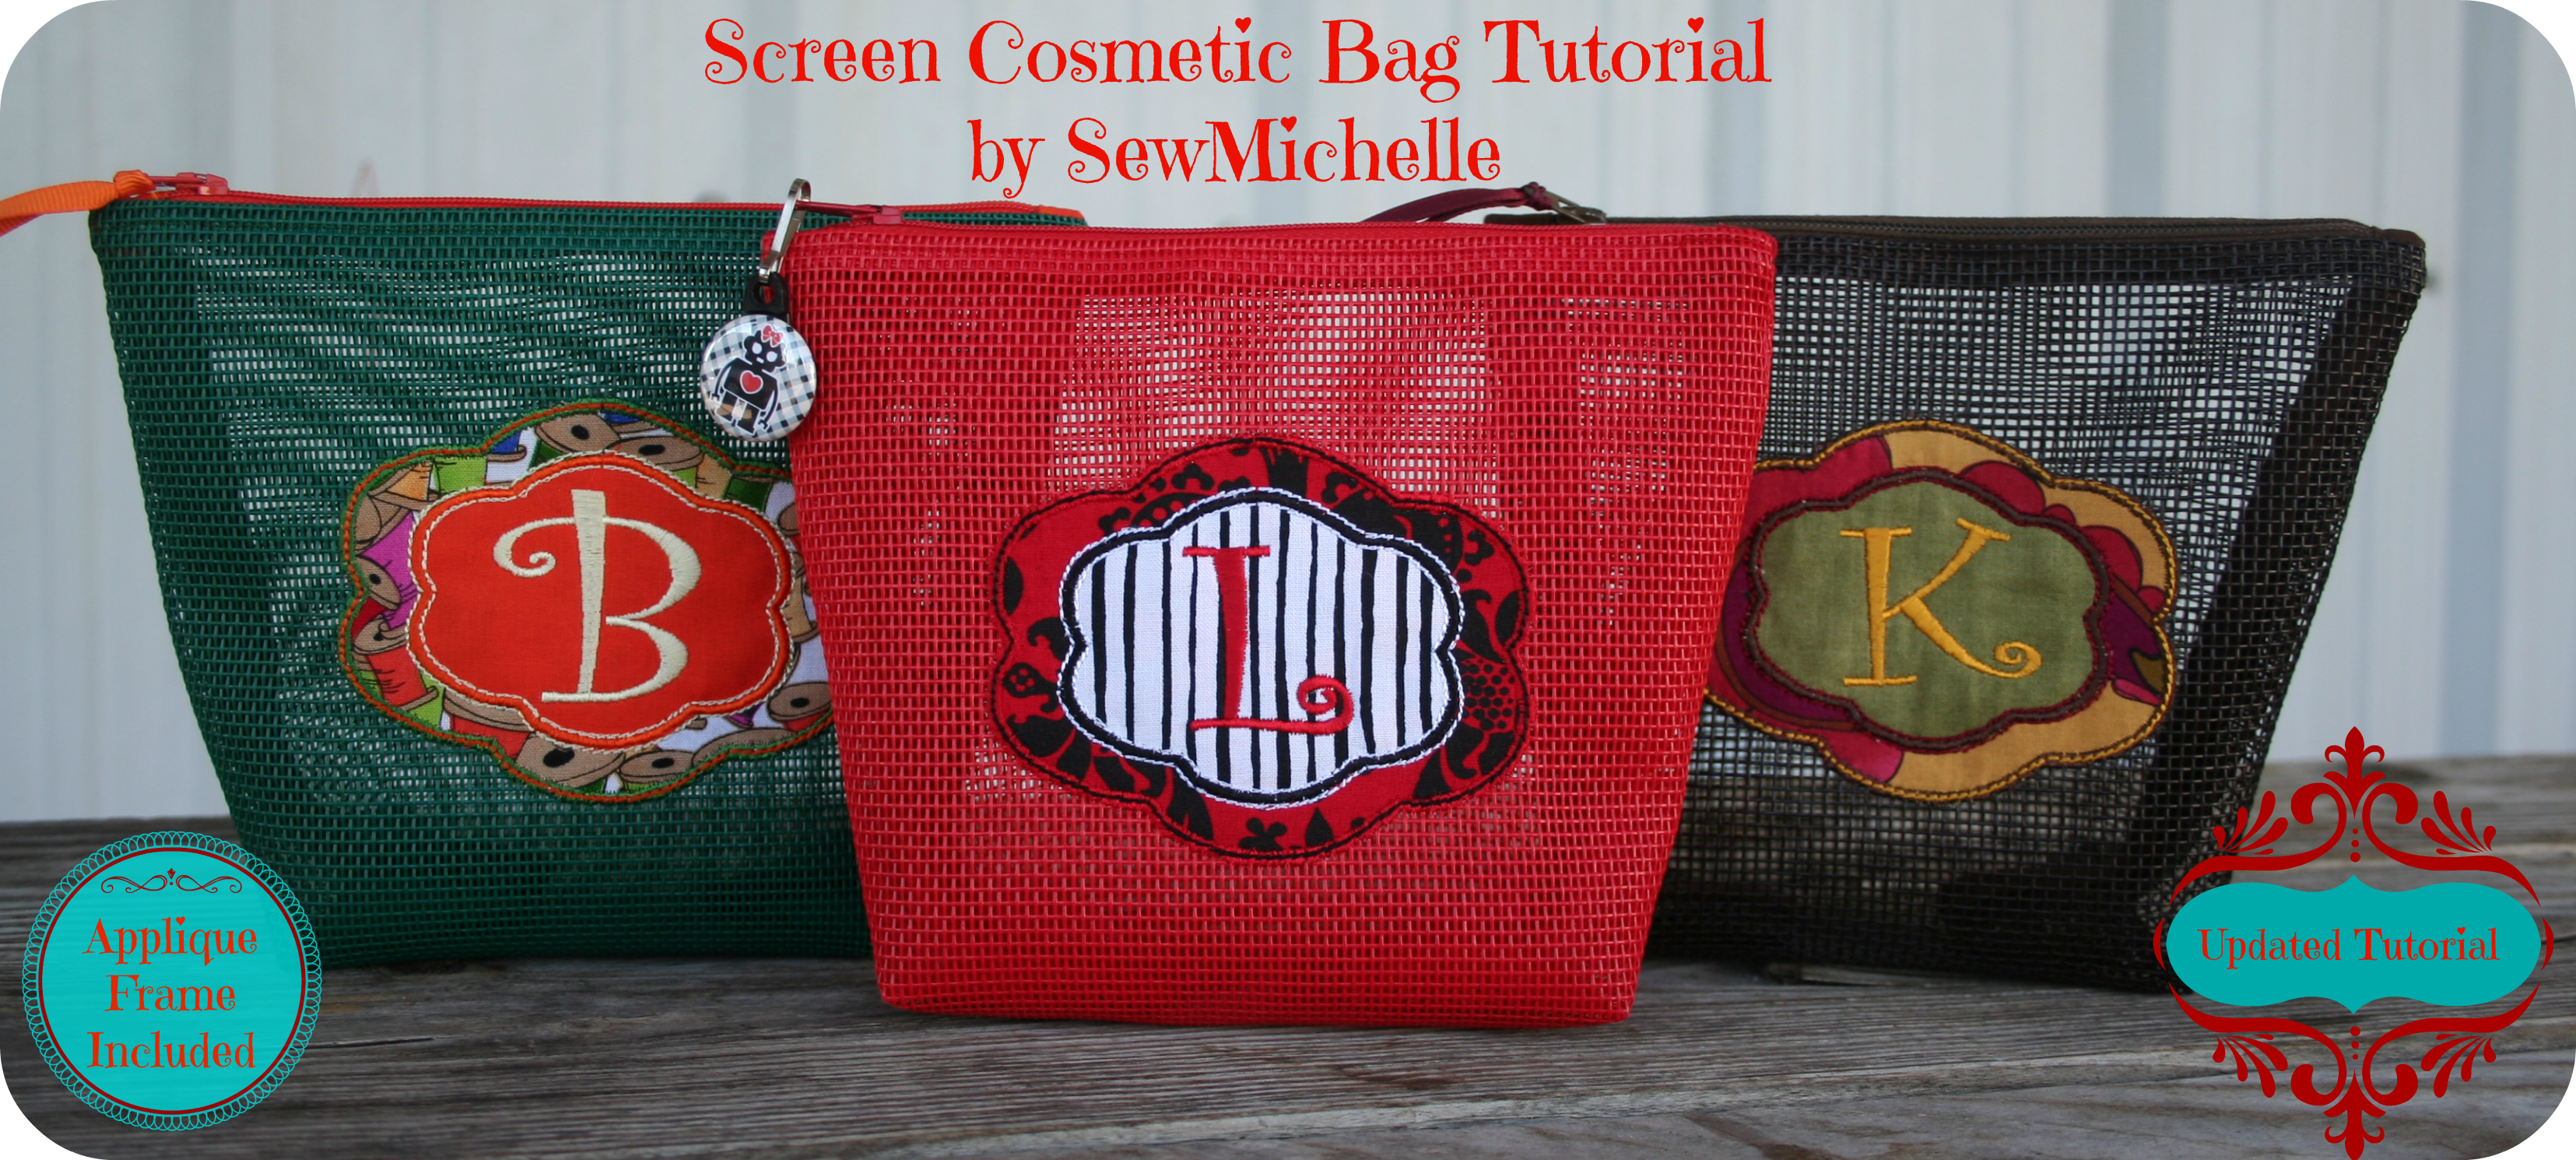 Screen Cosmetic Bag Tutorial by SewMichelle